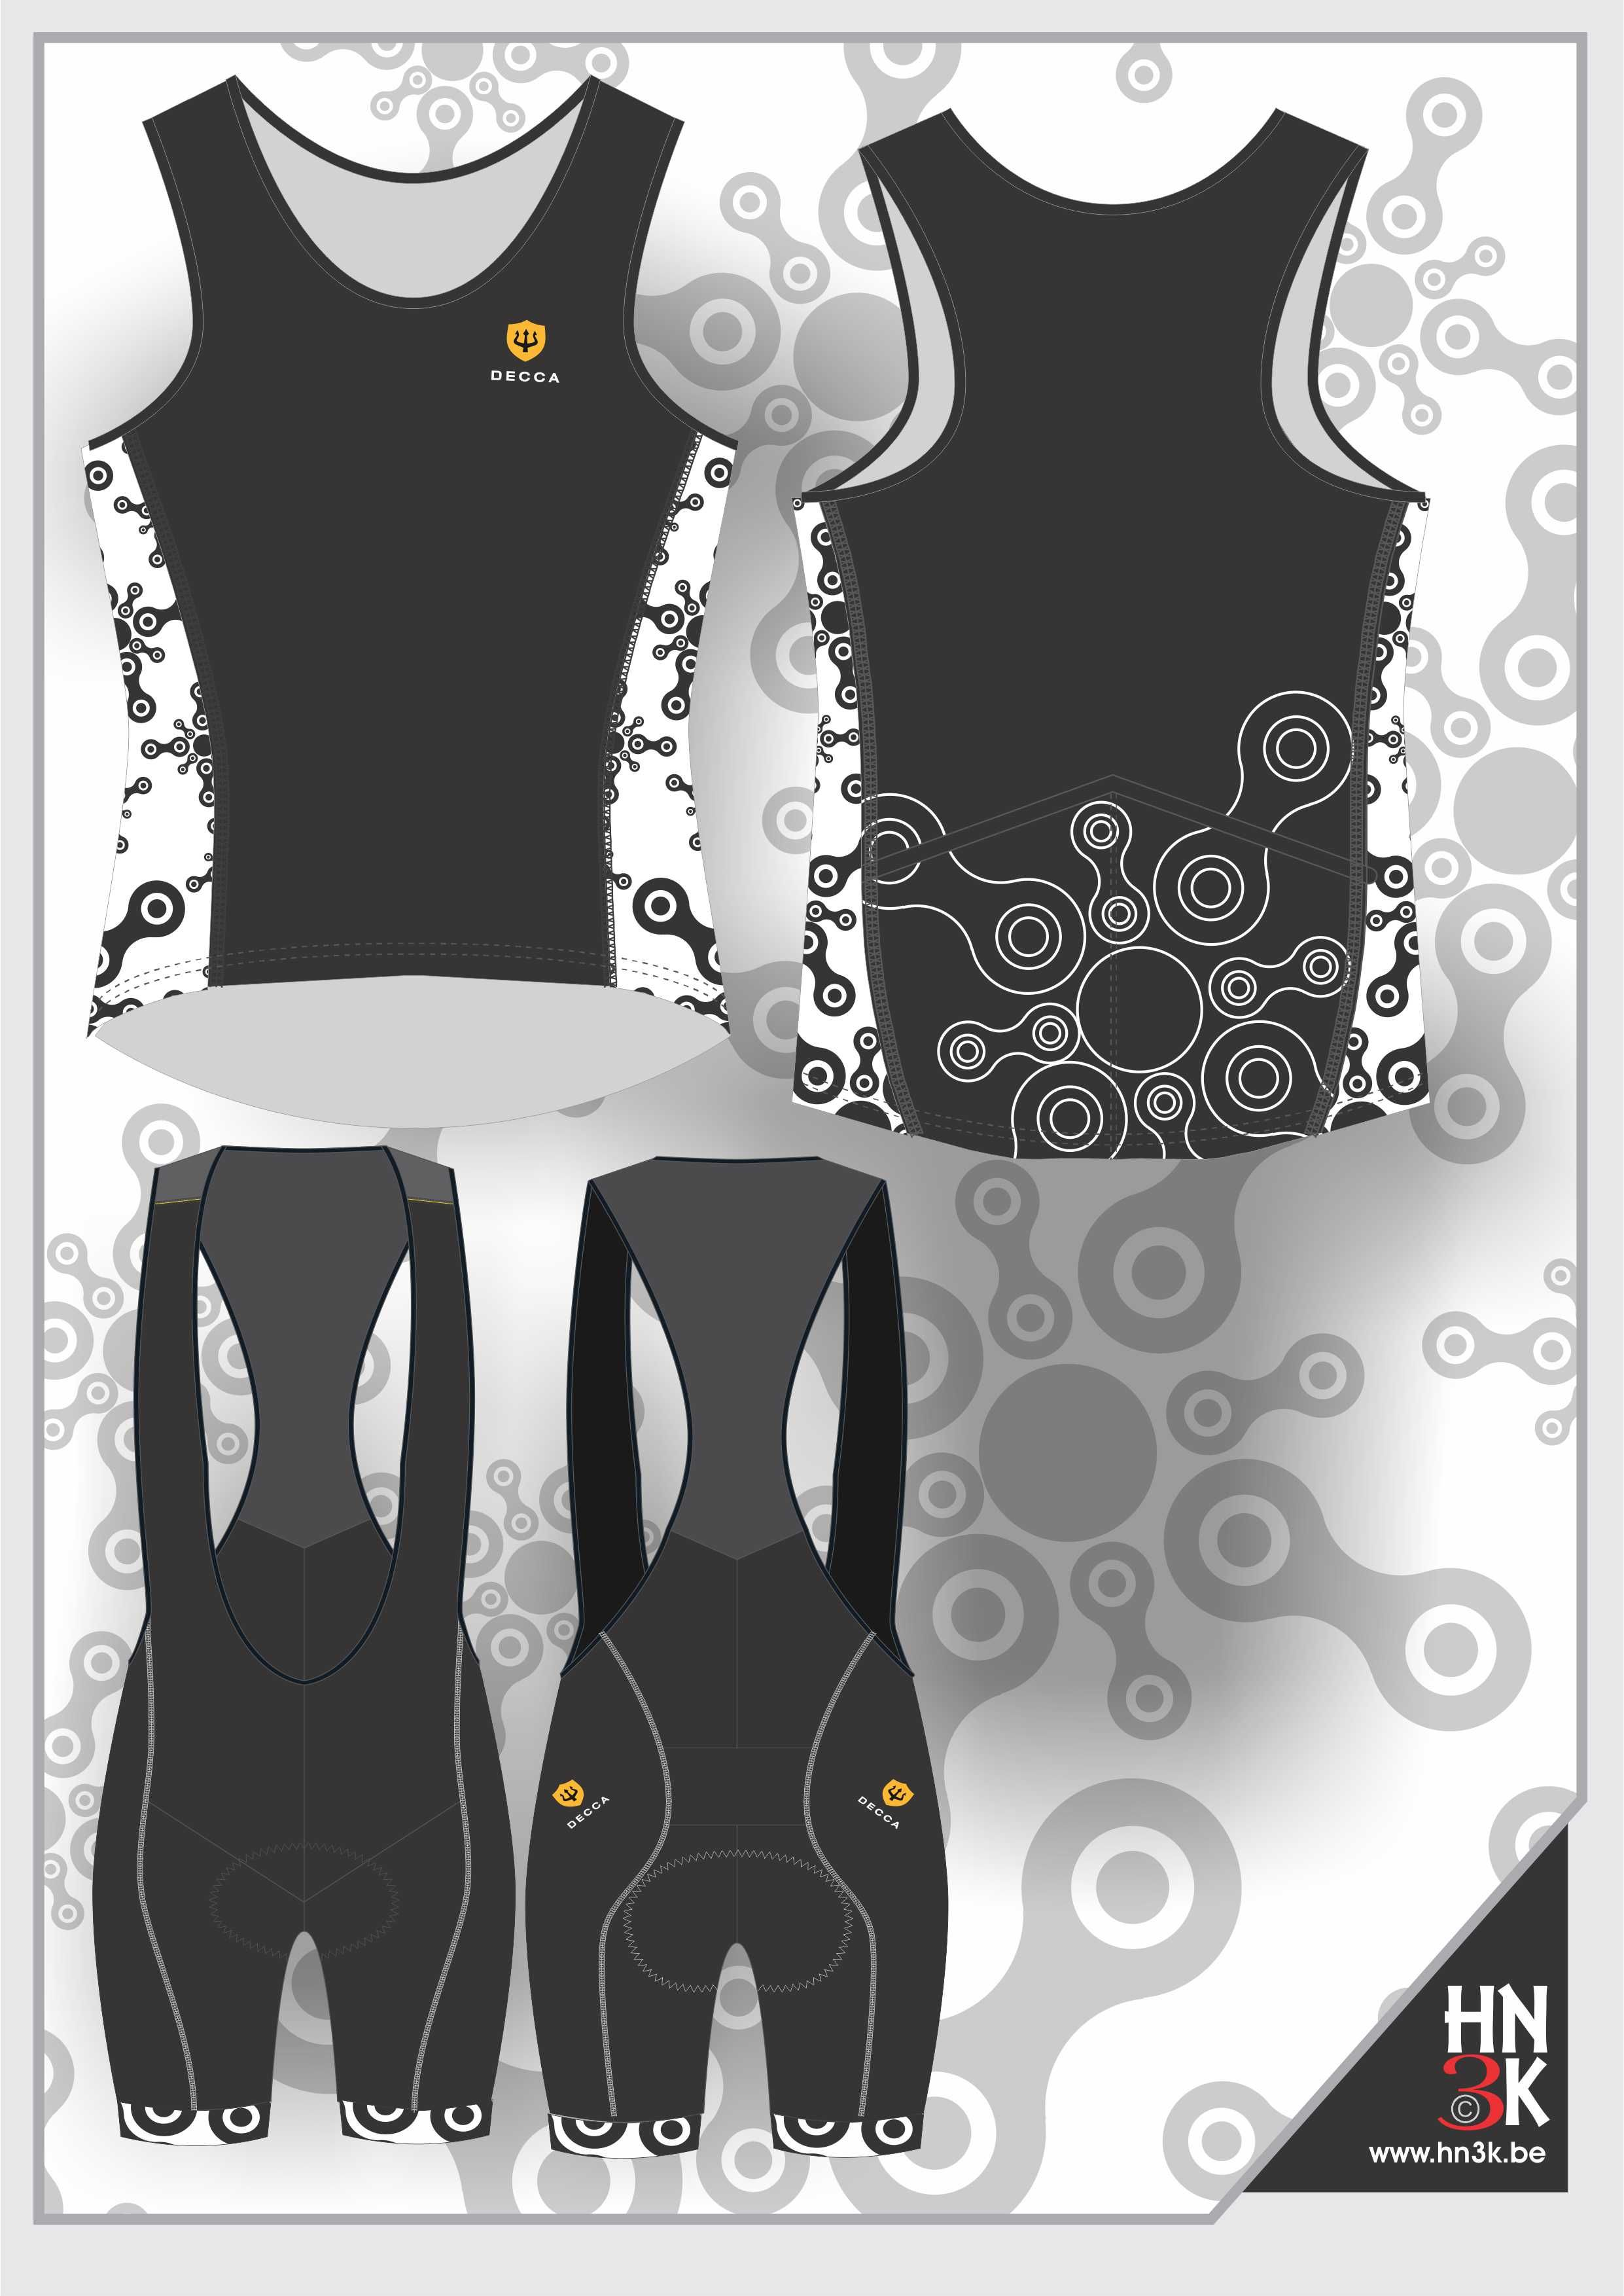 newest collection variety of designs and colors discount coupon lady's shirt sleeveless Decca | 款式图 | Sport outfits ...